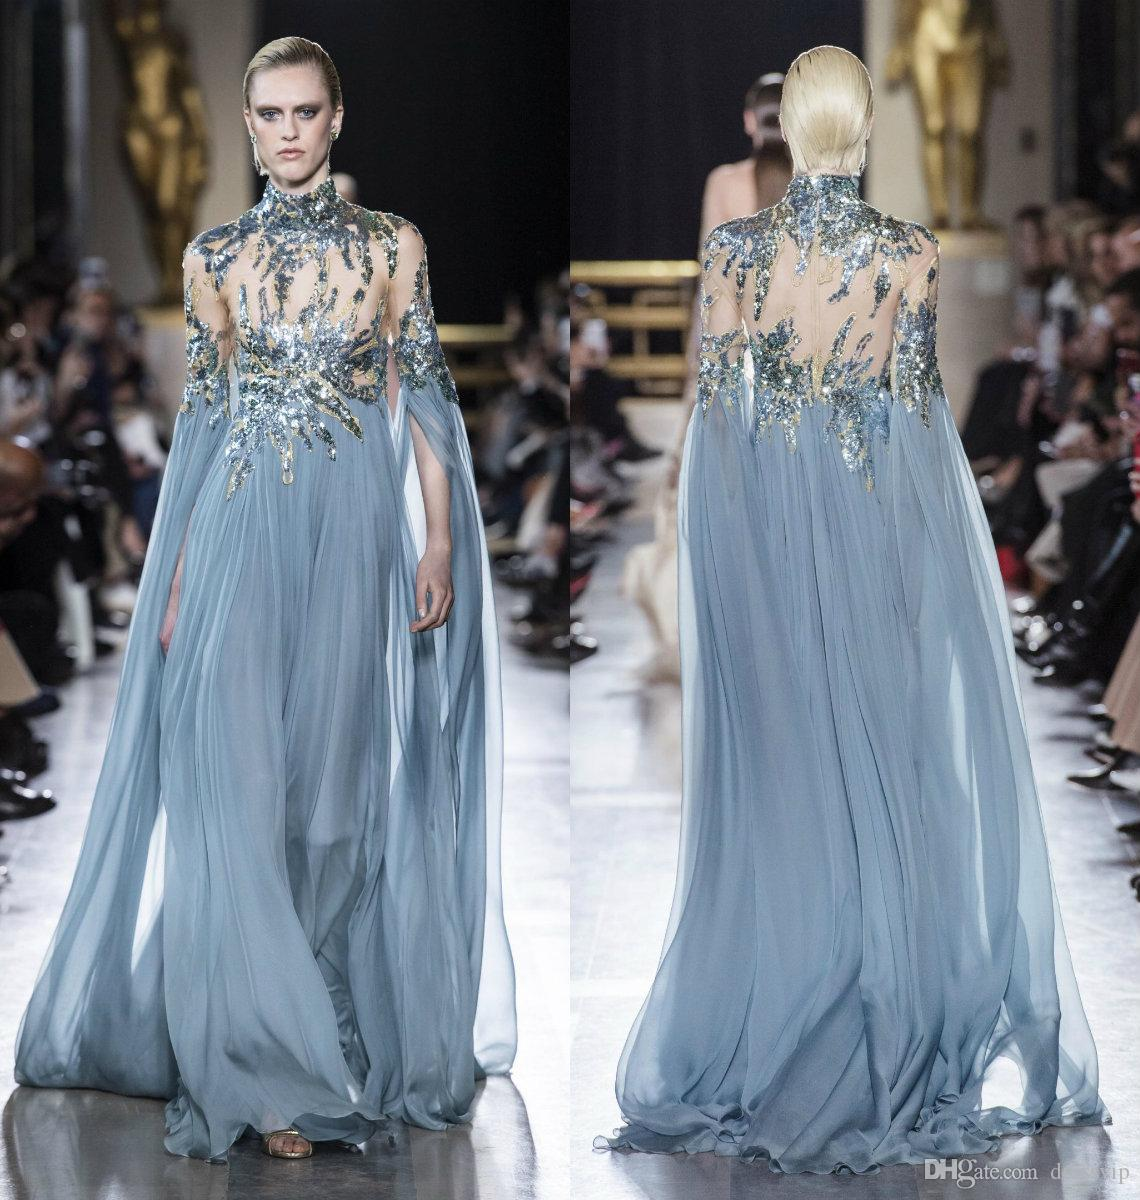 f22fc23f3f74 2019 Elie Saab Prom Dresses High Neck Illusion Bodice Sequins A Line Sweep  Train Long Sleeve Evening Dress Custom Made Formal Party Gowns Cheap Camo  Prom ...